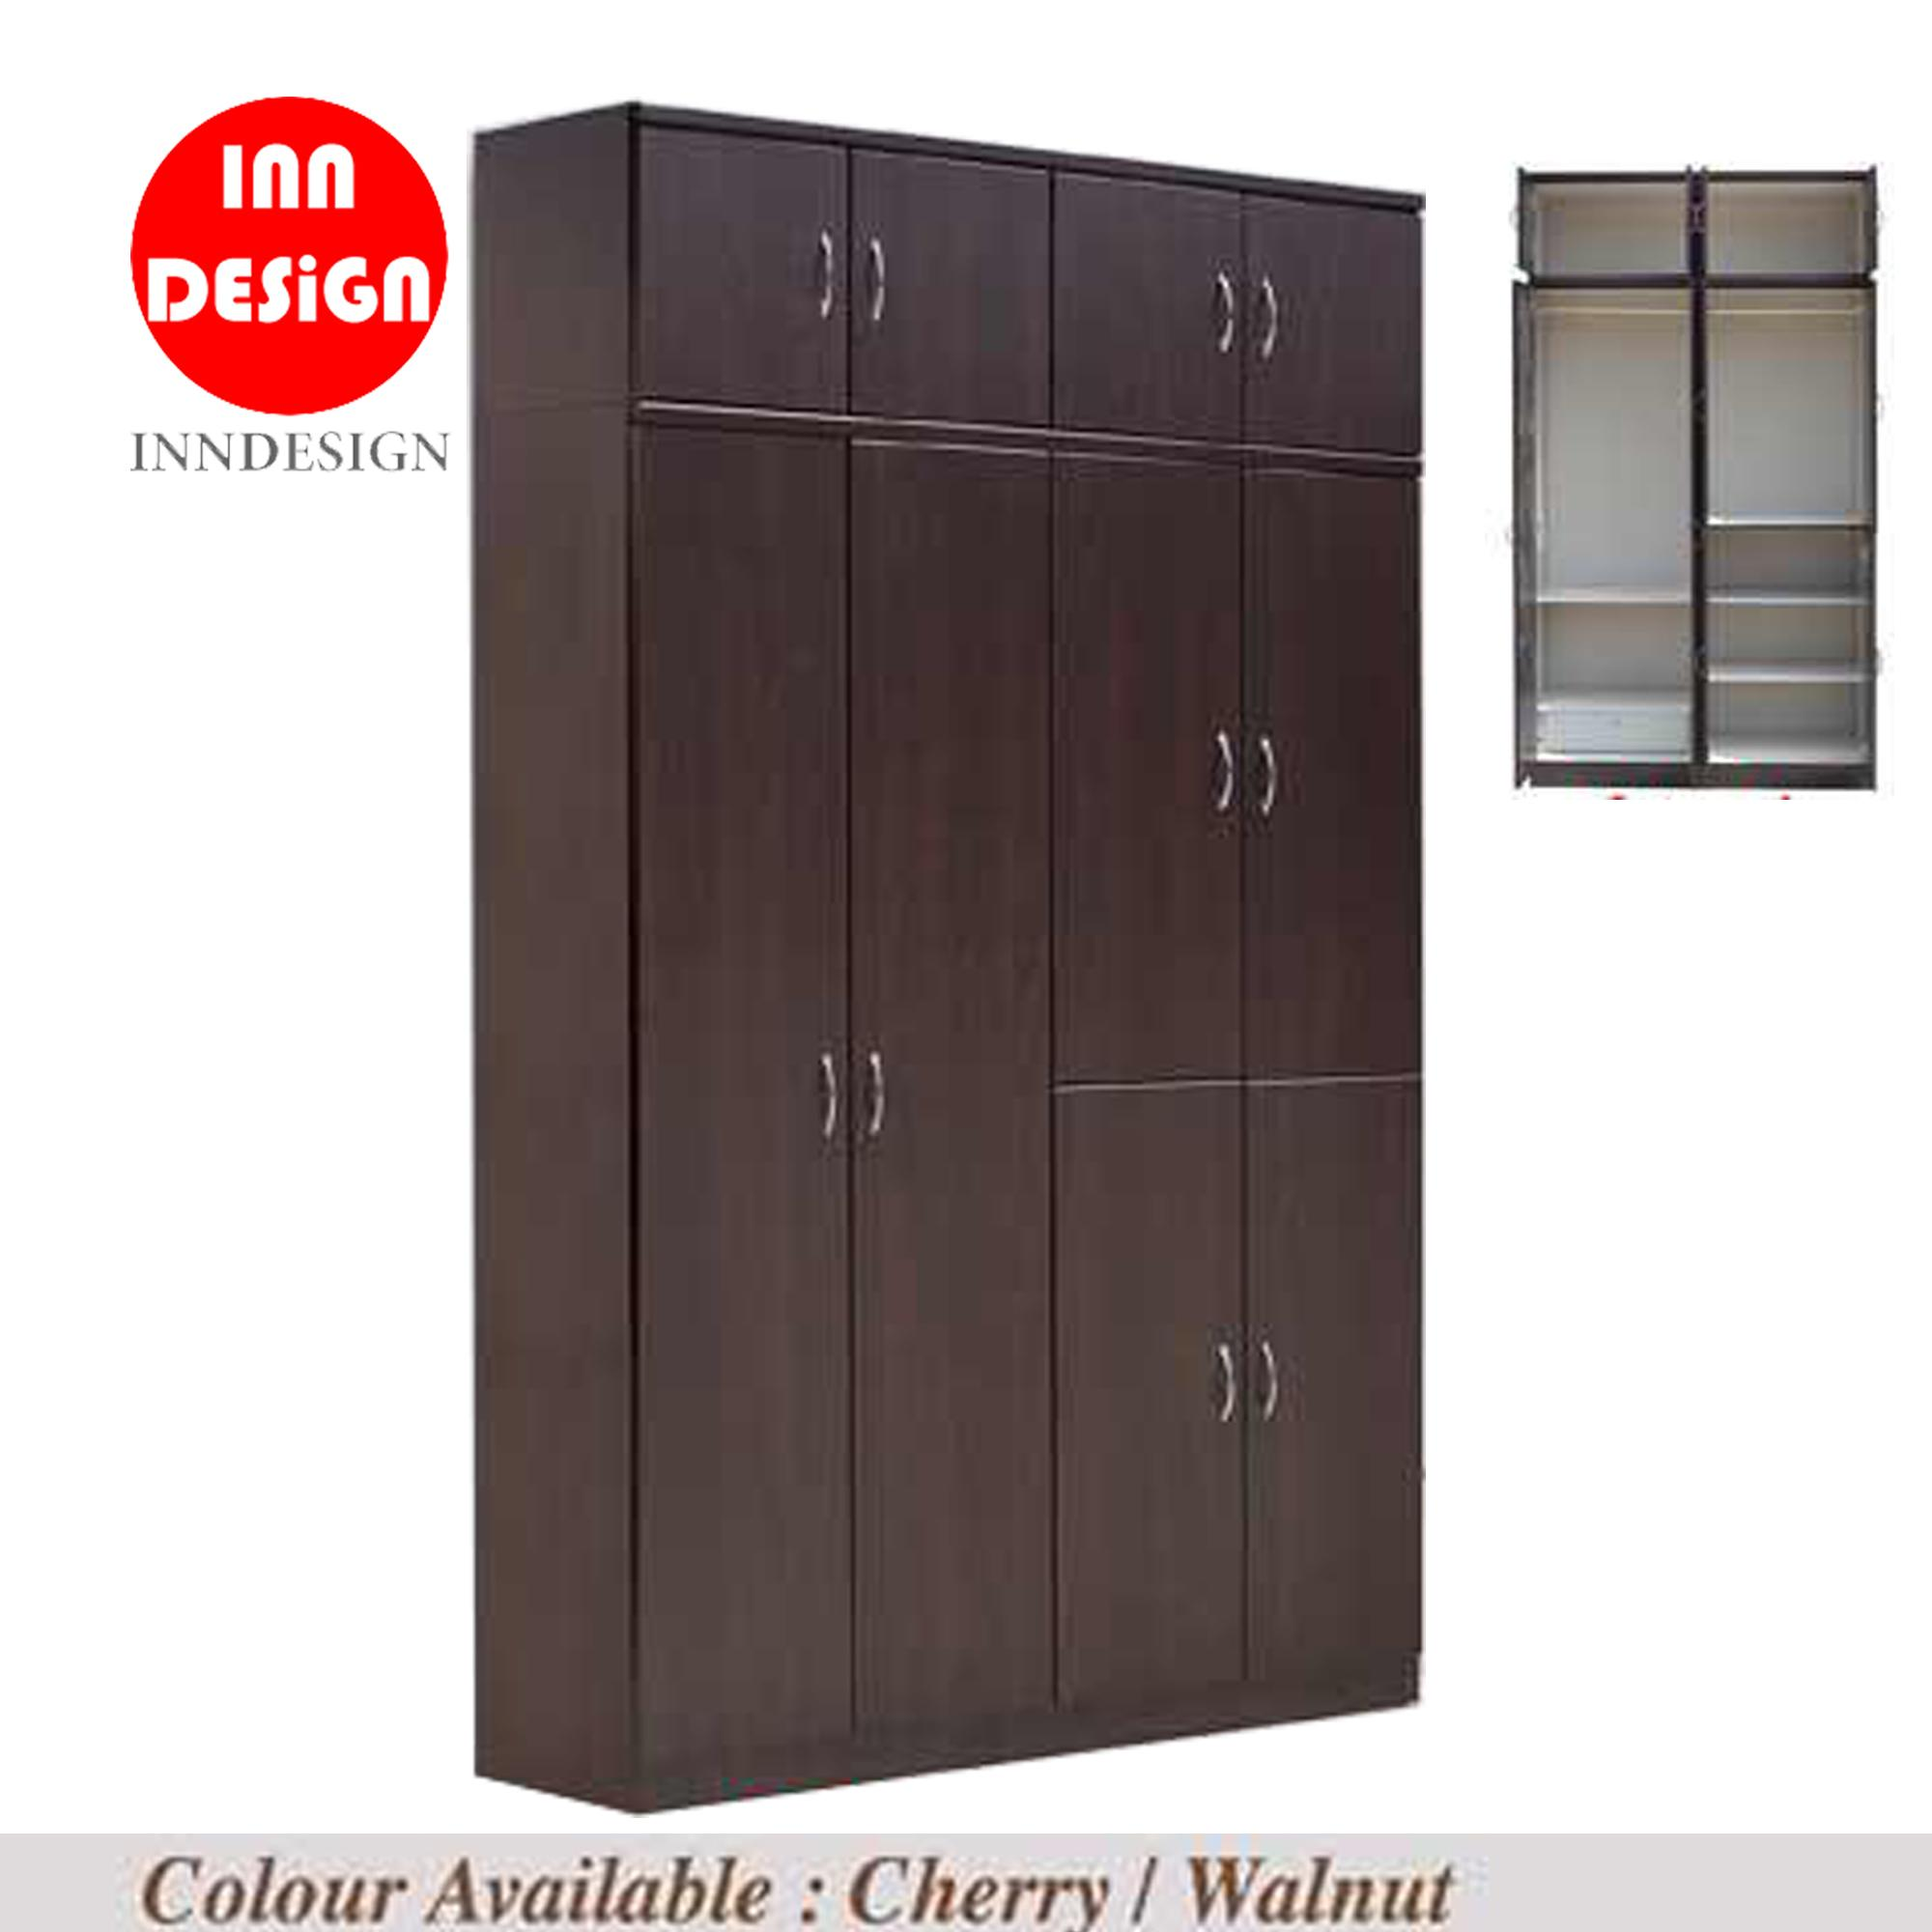 [LAST 3 SETS OFFER] 10 Doors Solid PlyWood Wardrobe (Free Delivery and Installation) (Cherry and Walnut)